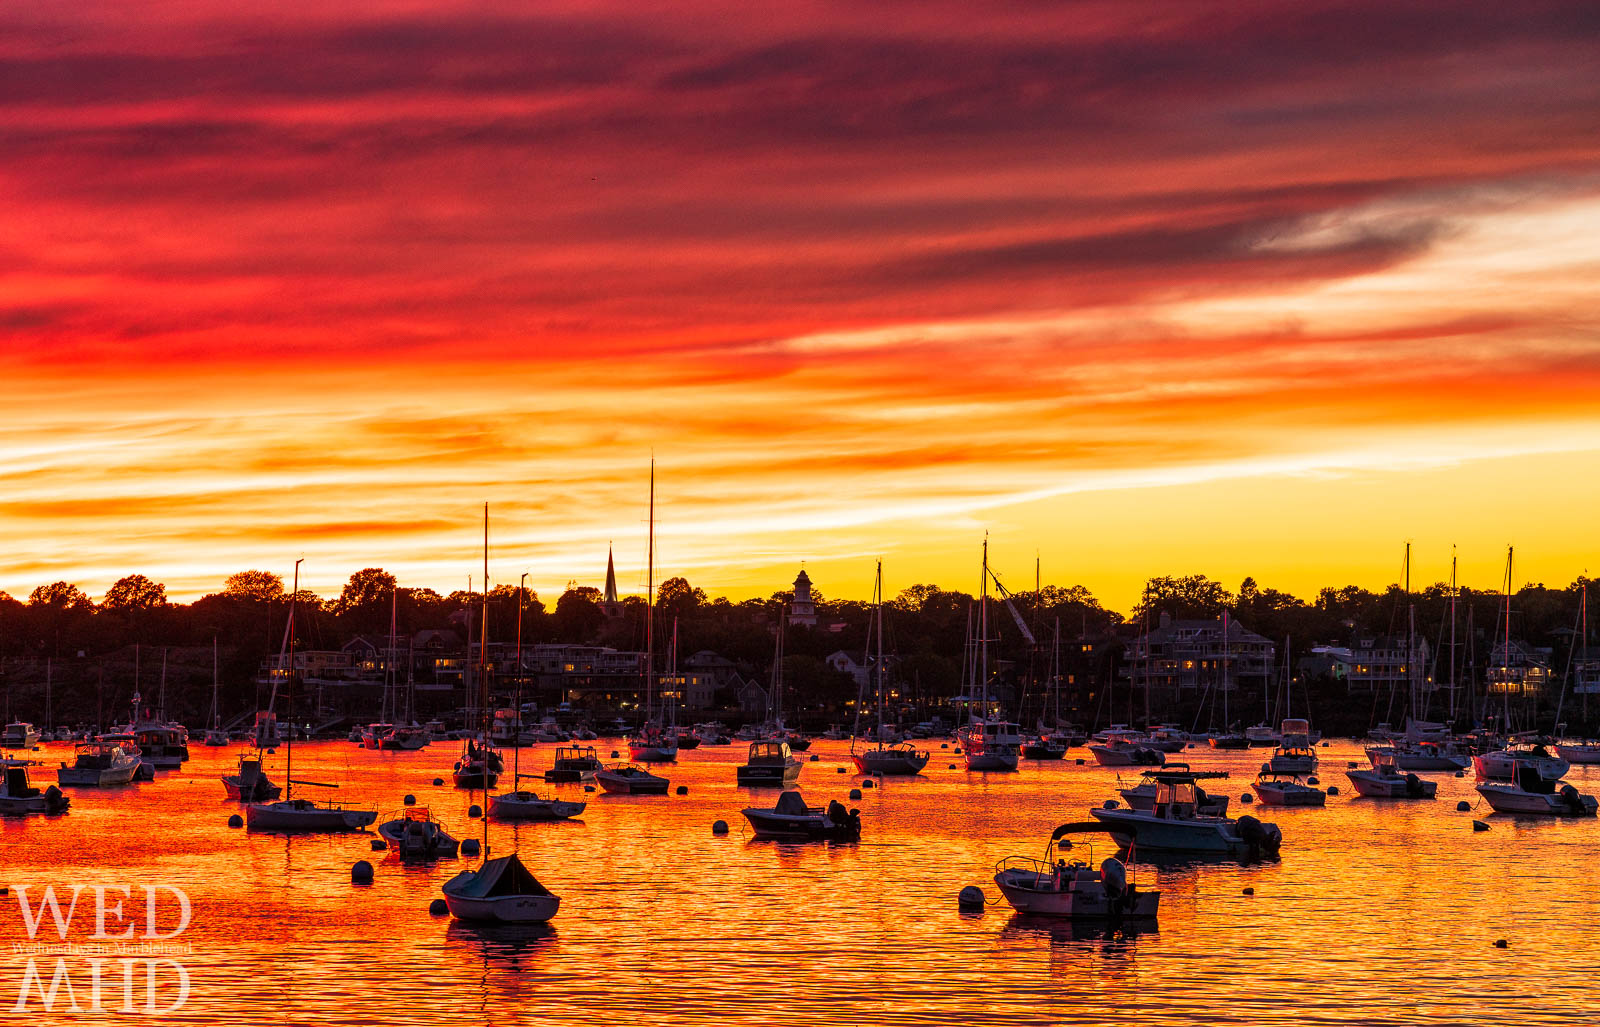 The red glow of sunset reflects in the waters of Marblehead Harbor with views of St. Michael's steeple and Grace Community Church punctuating the skyline